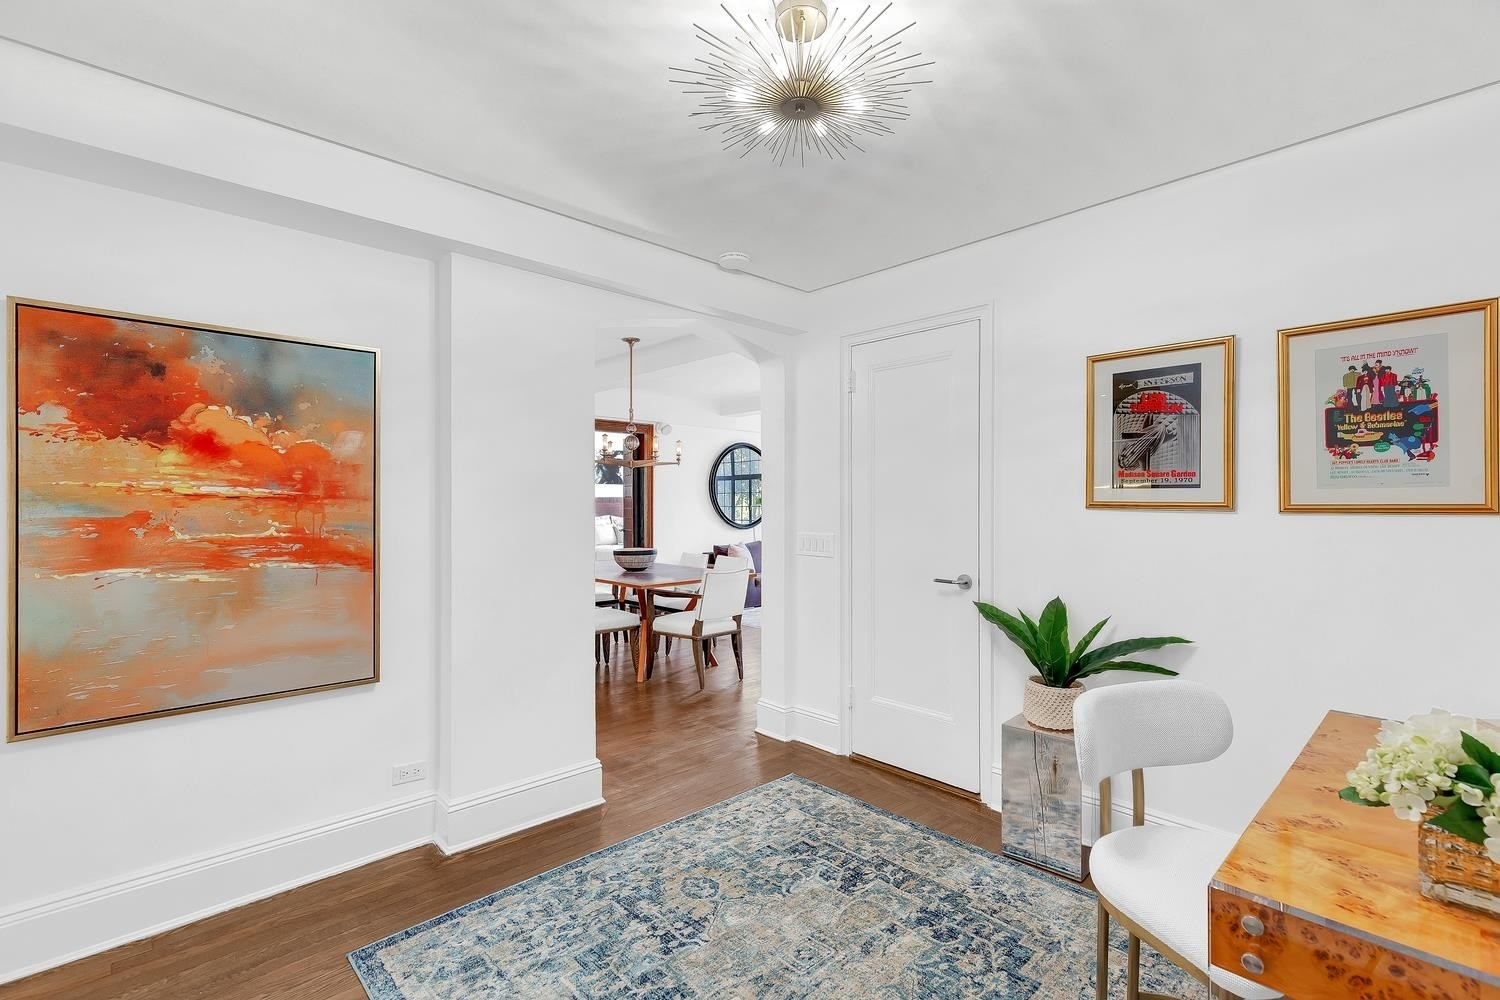 4. Co-op Properties for Sale at GRAMERCY OWNERS LTD, 44 Gramercy Park North, 4C Gramercy Park, New York, NY 10010